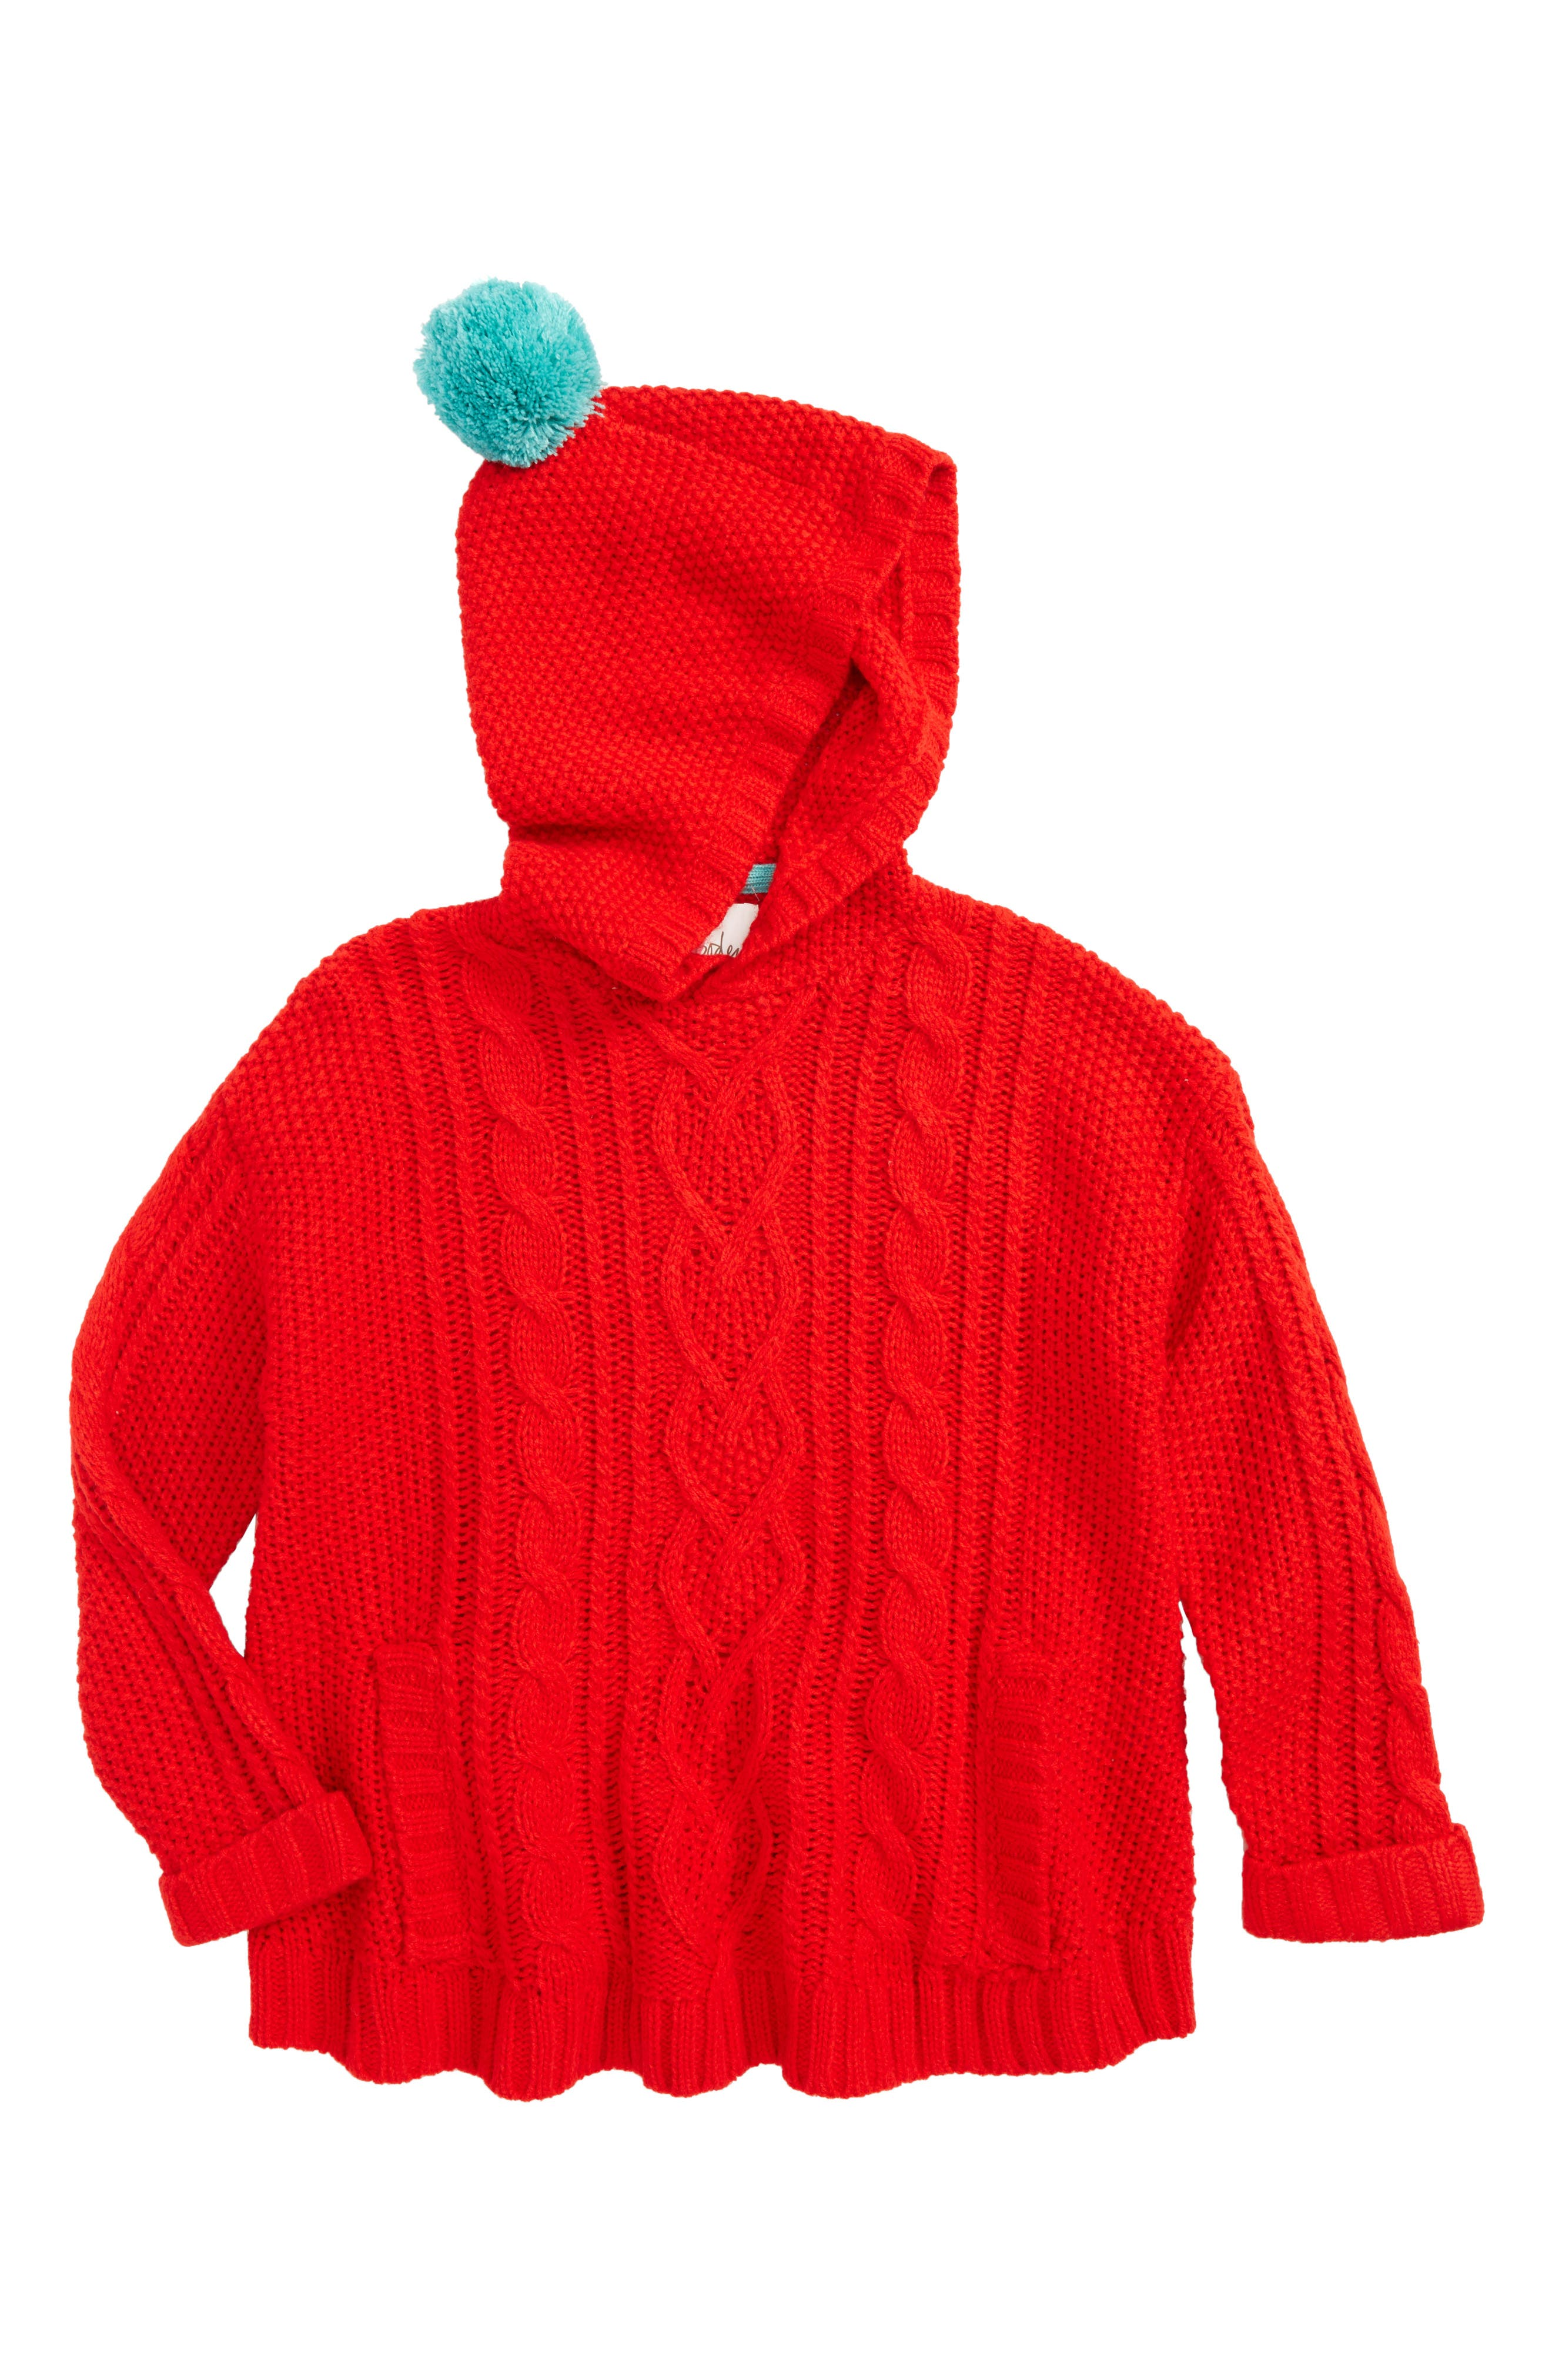 Mini Boden Cable Knit Hooded Sweater (Toddler Girls, Little Girls & Big Girls)